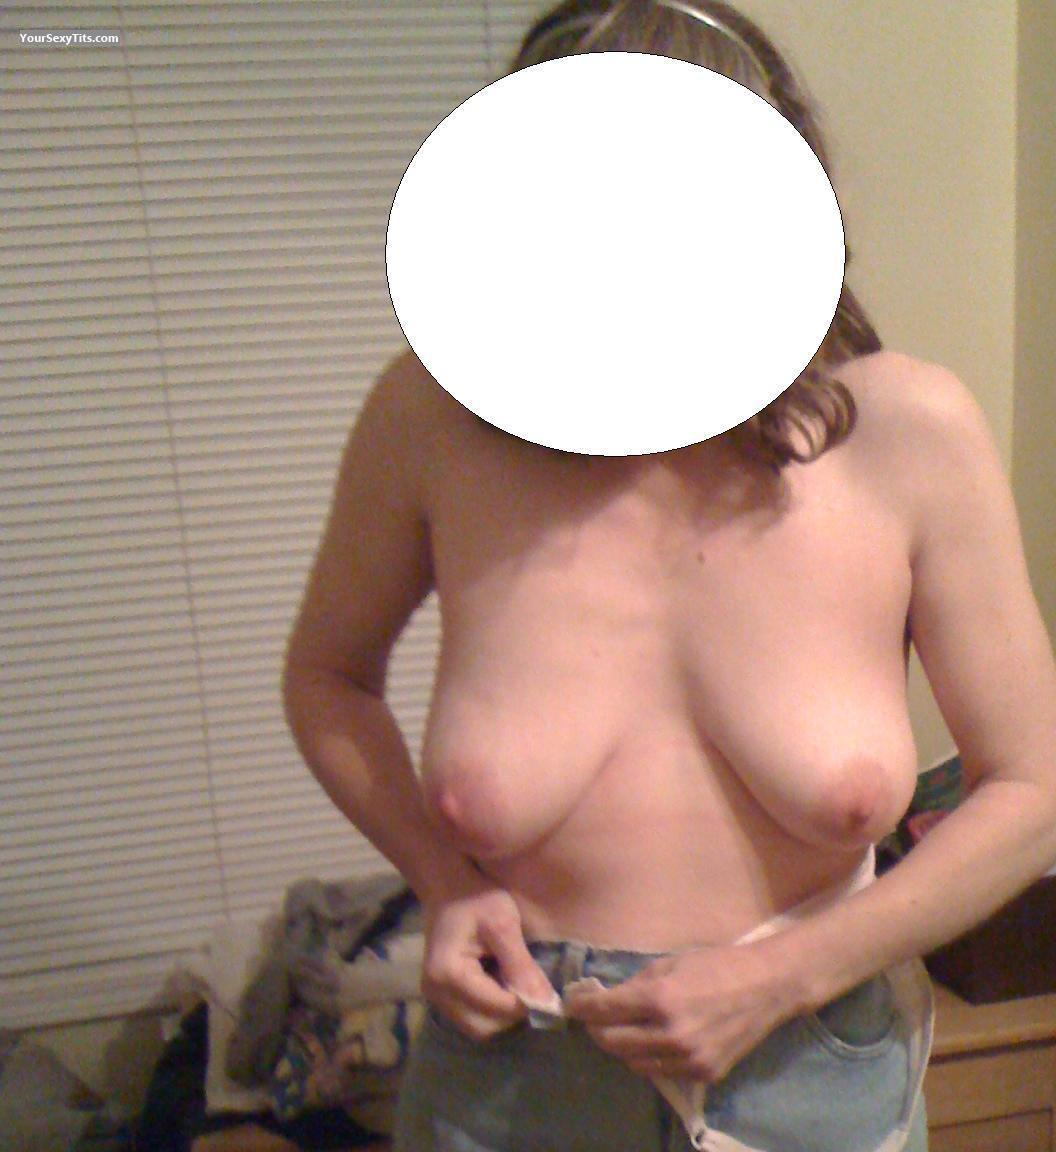 Tit Flash: Wife's Medium Tits - Pen from Canada